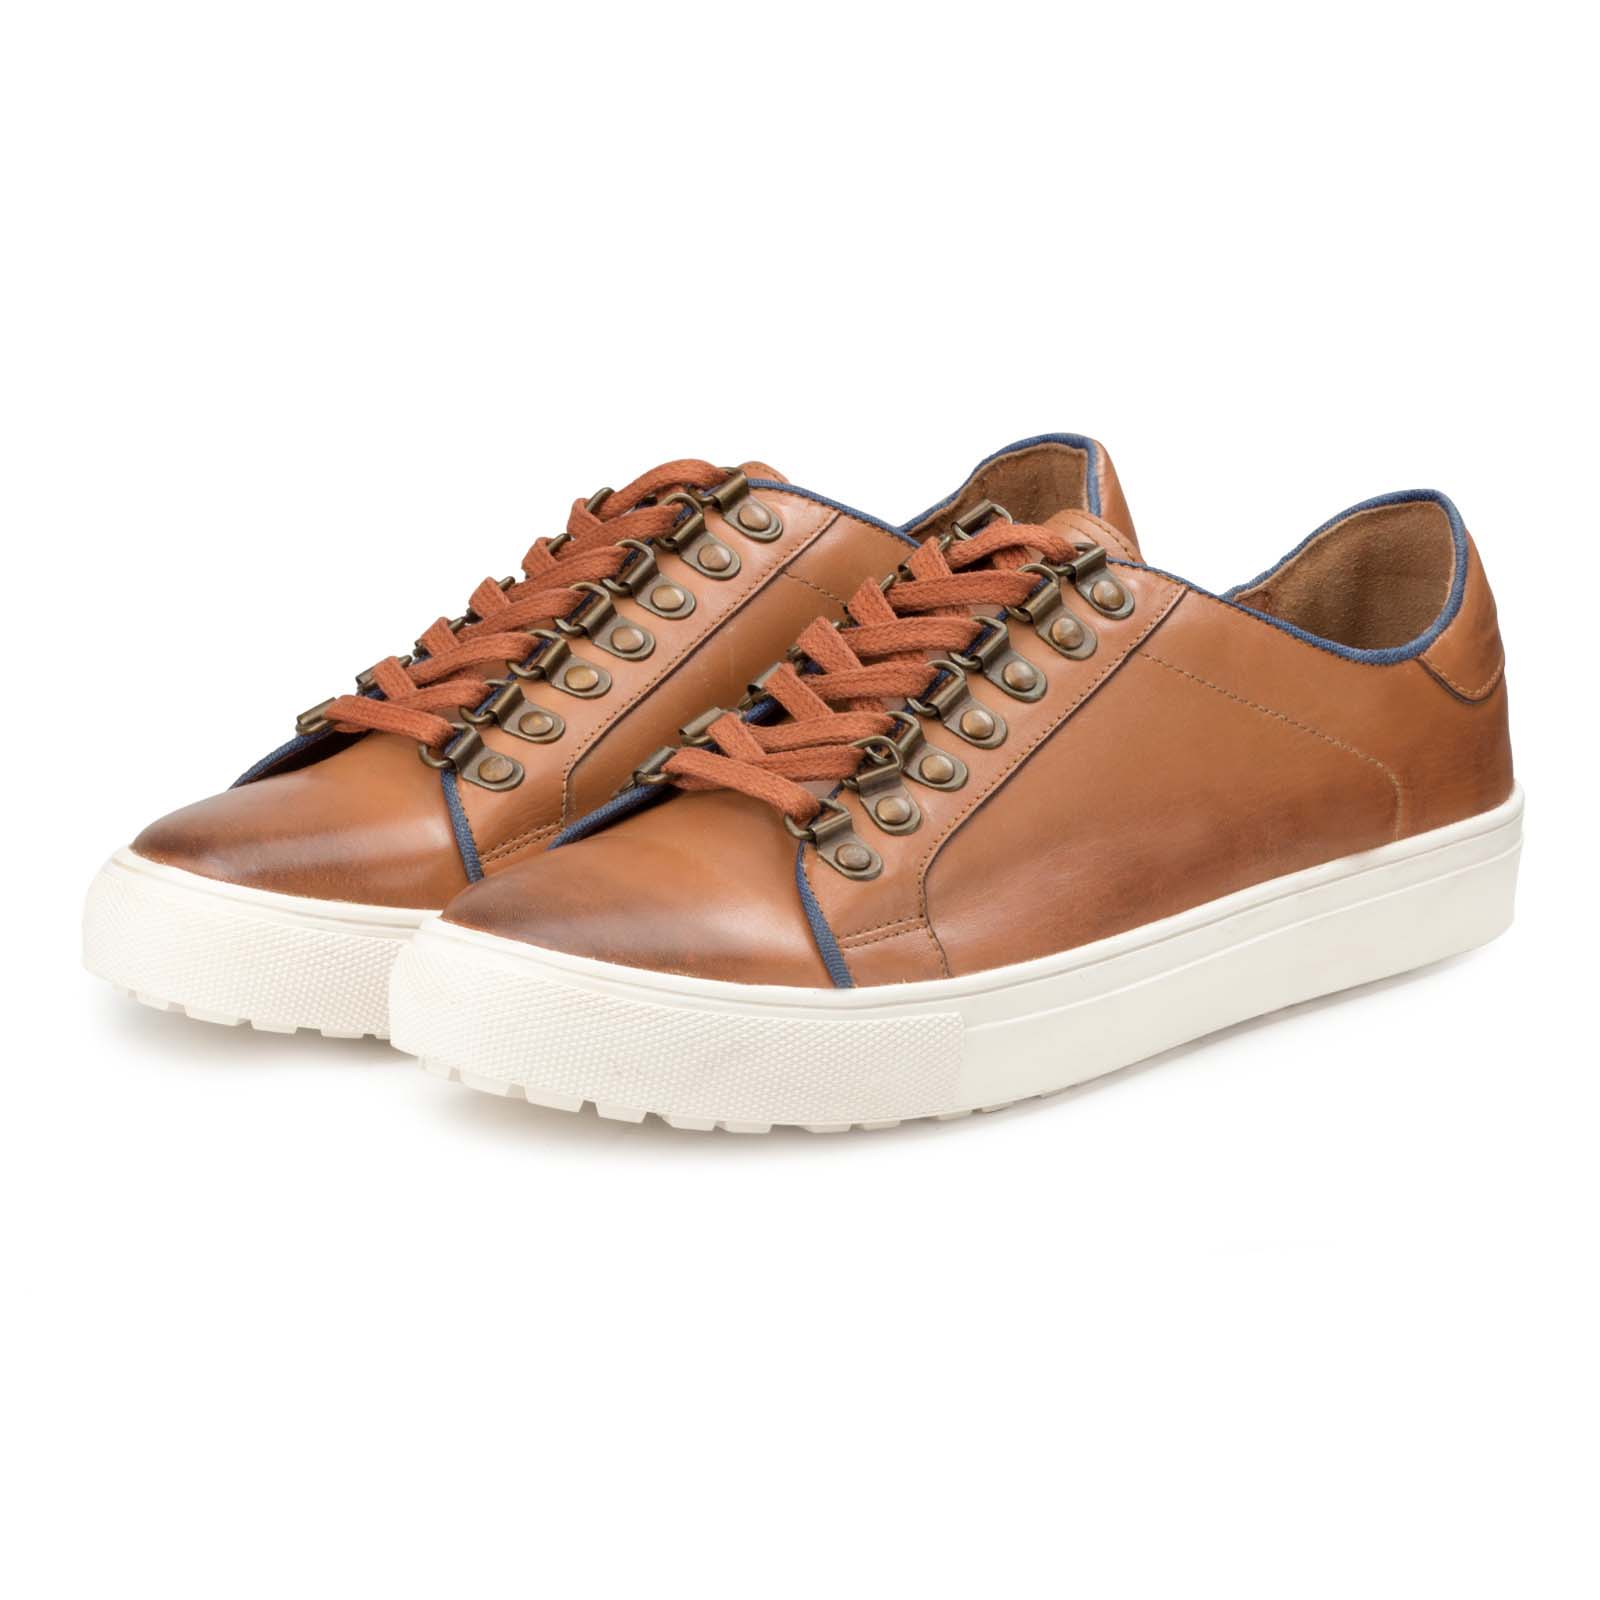 Tan-Black Low-Top Leather Sneakers